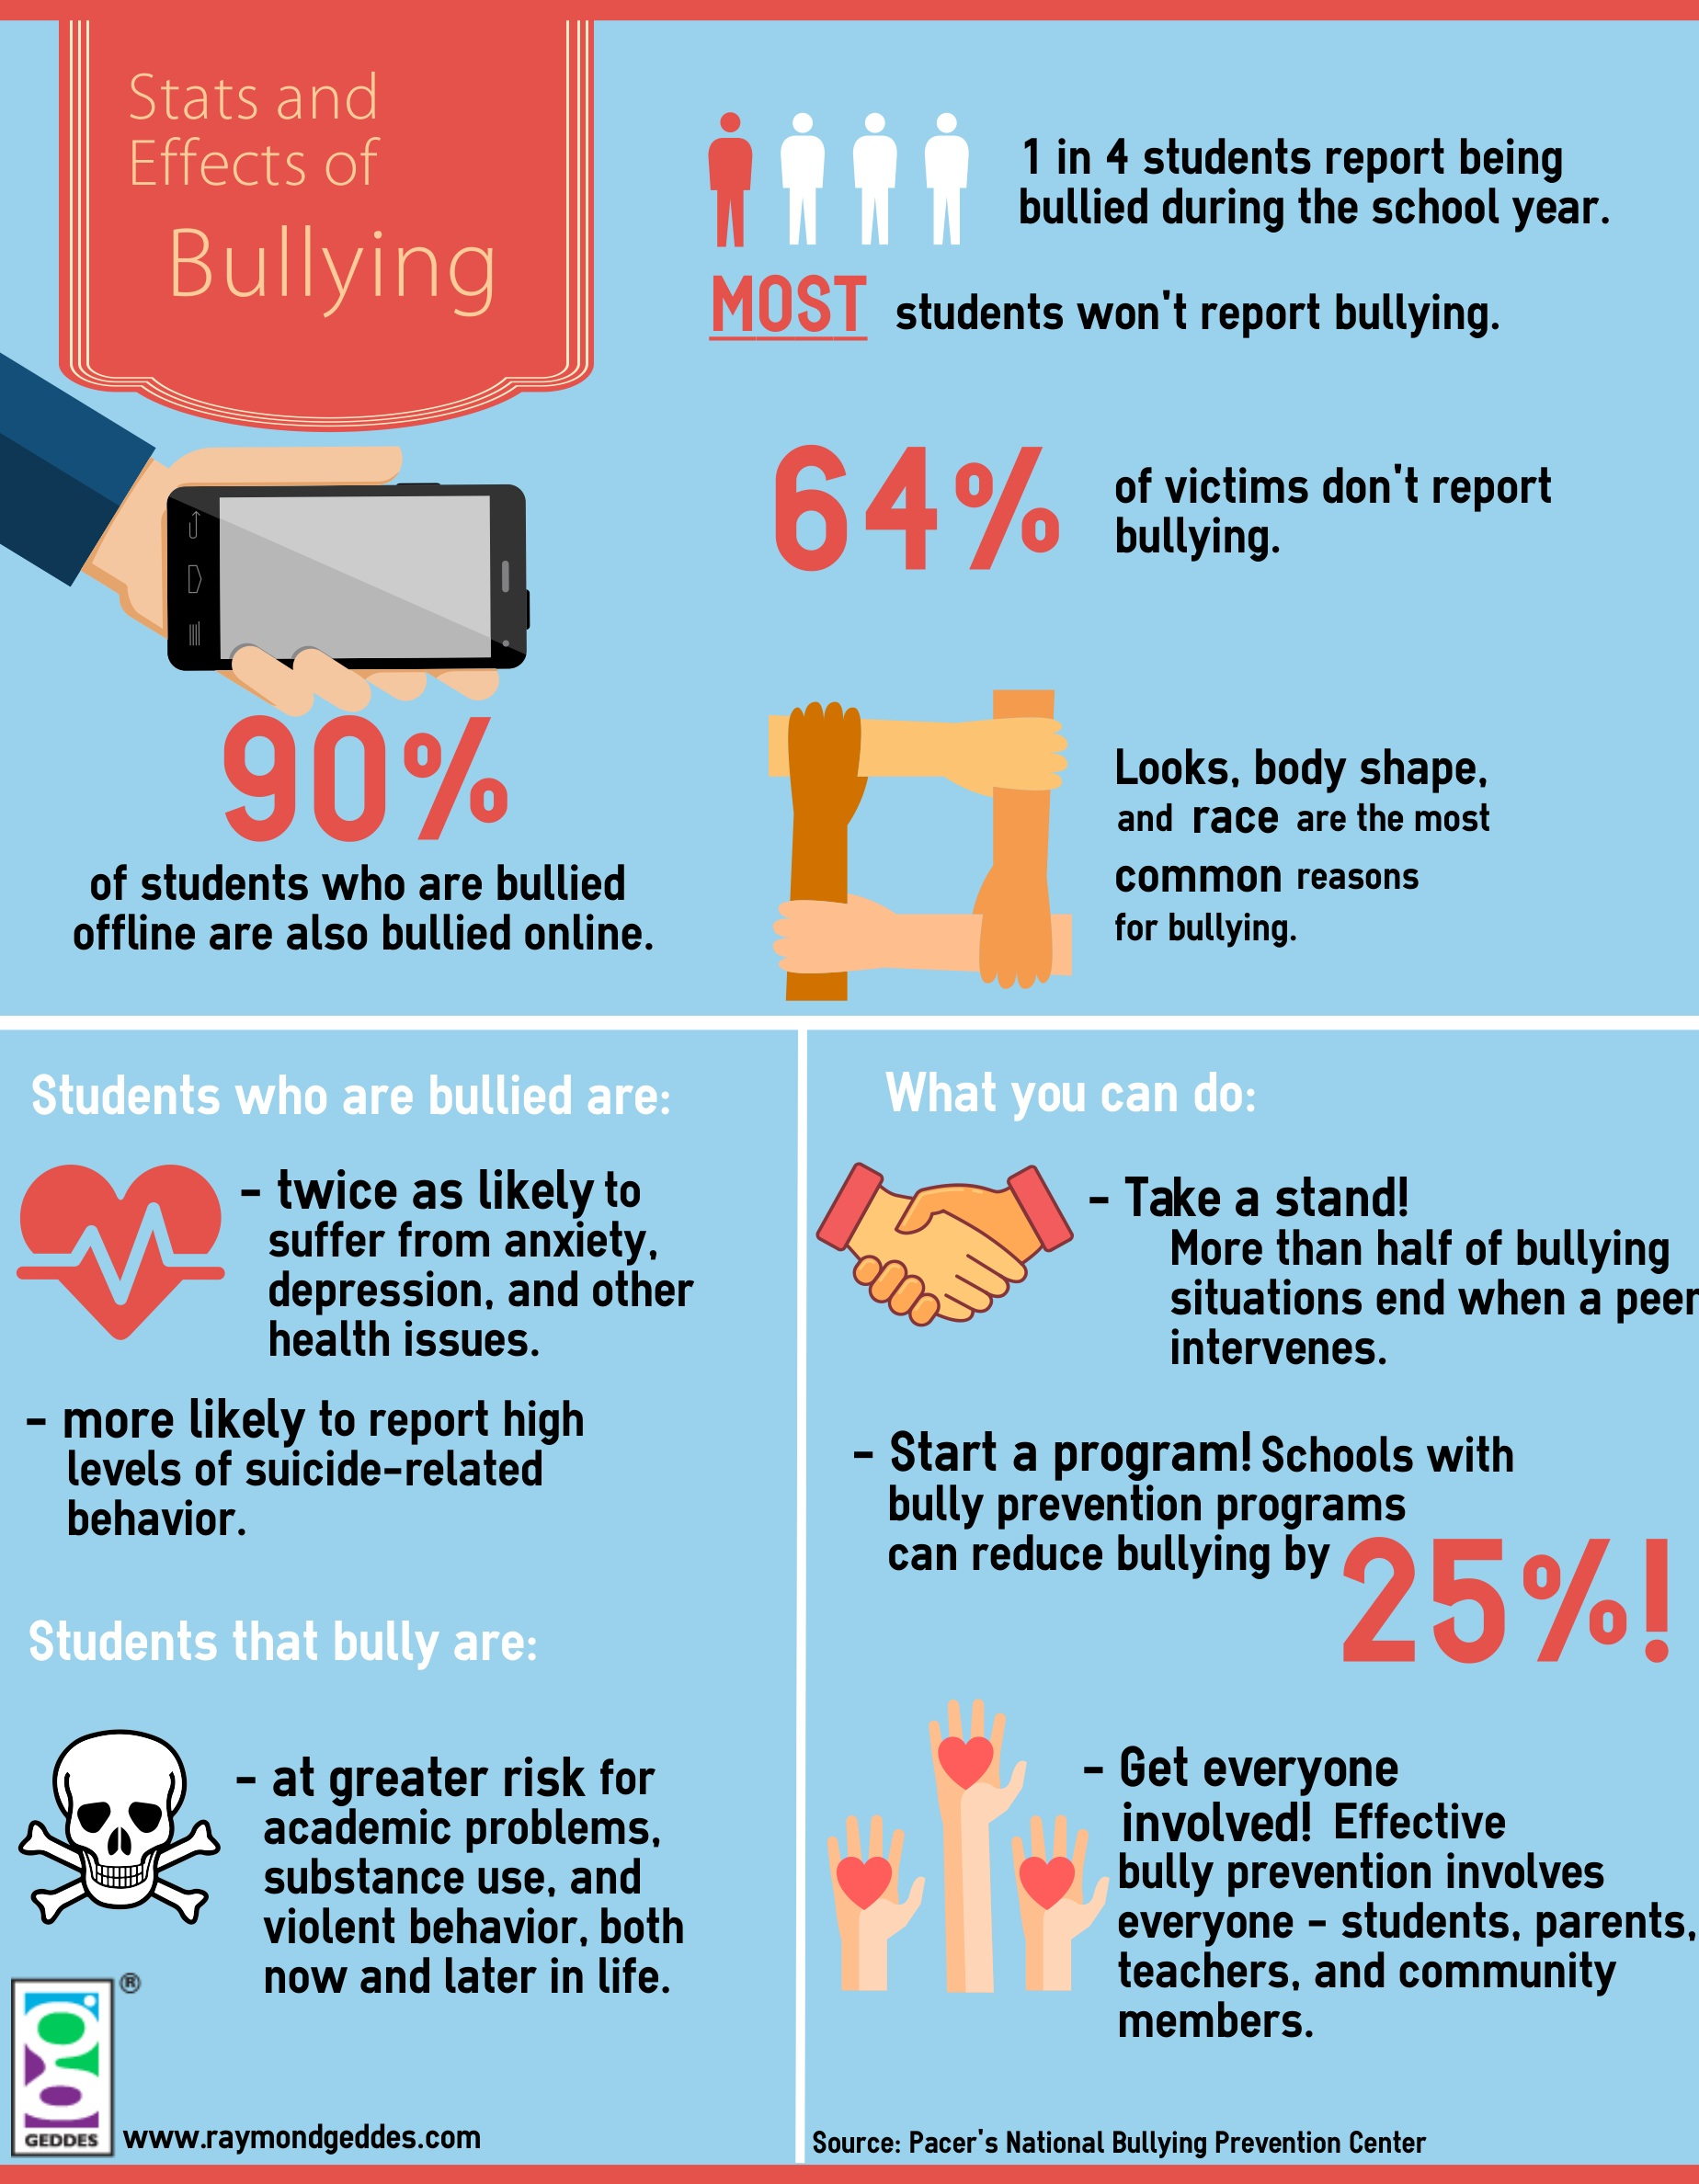 Stats and Effects of Bullying Infographic